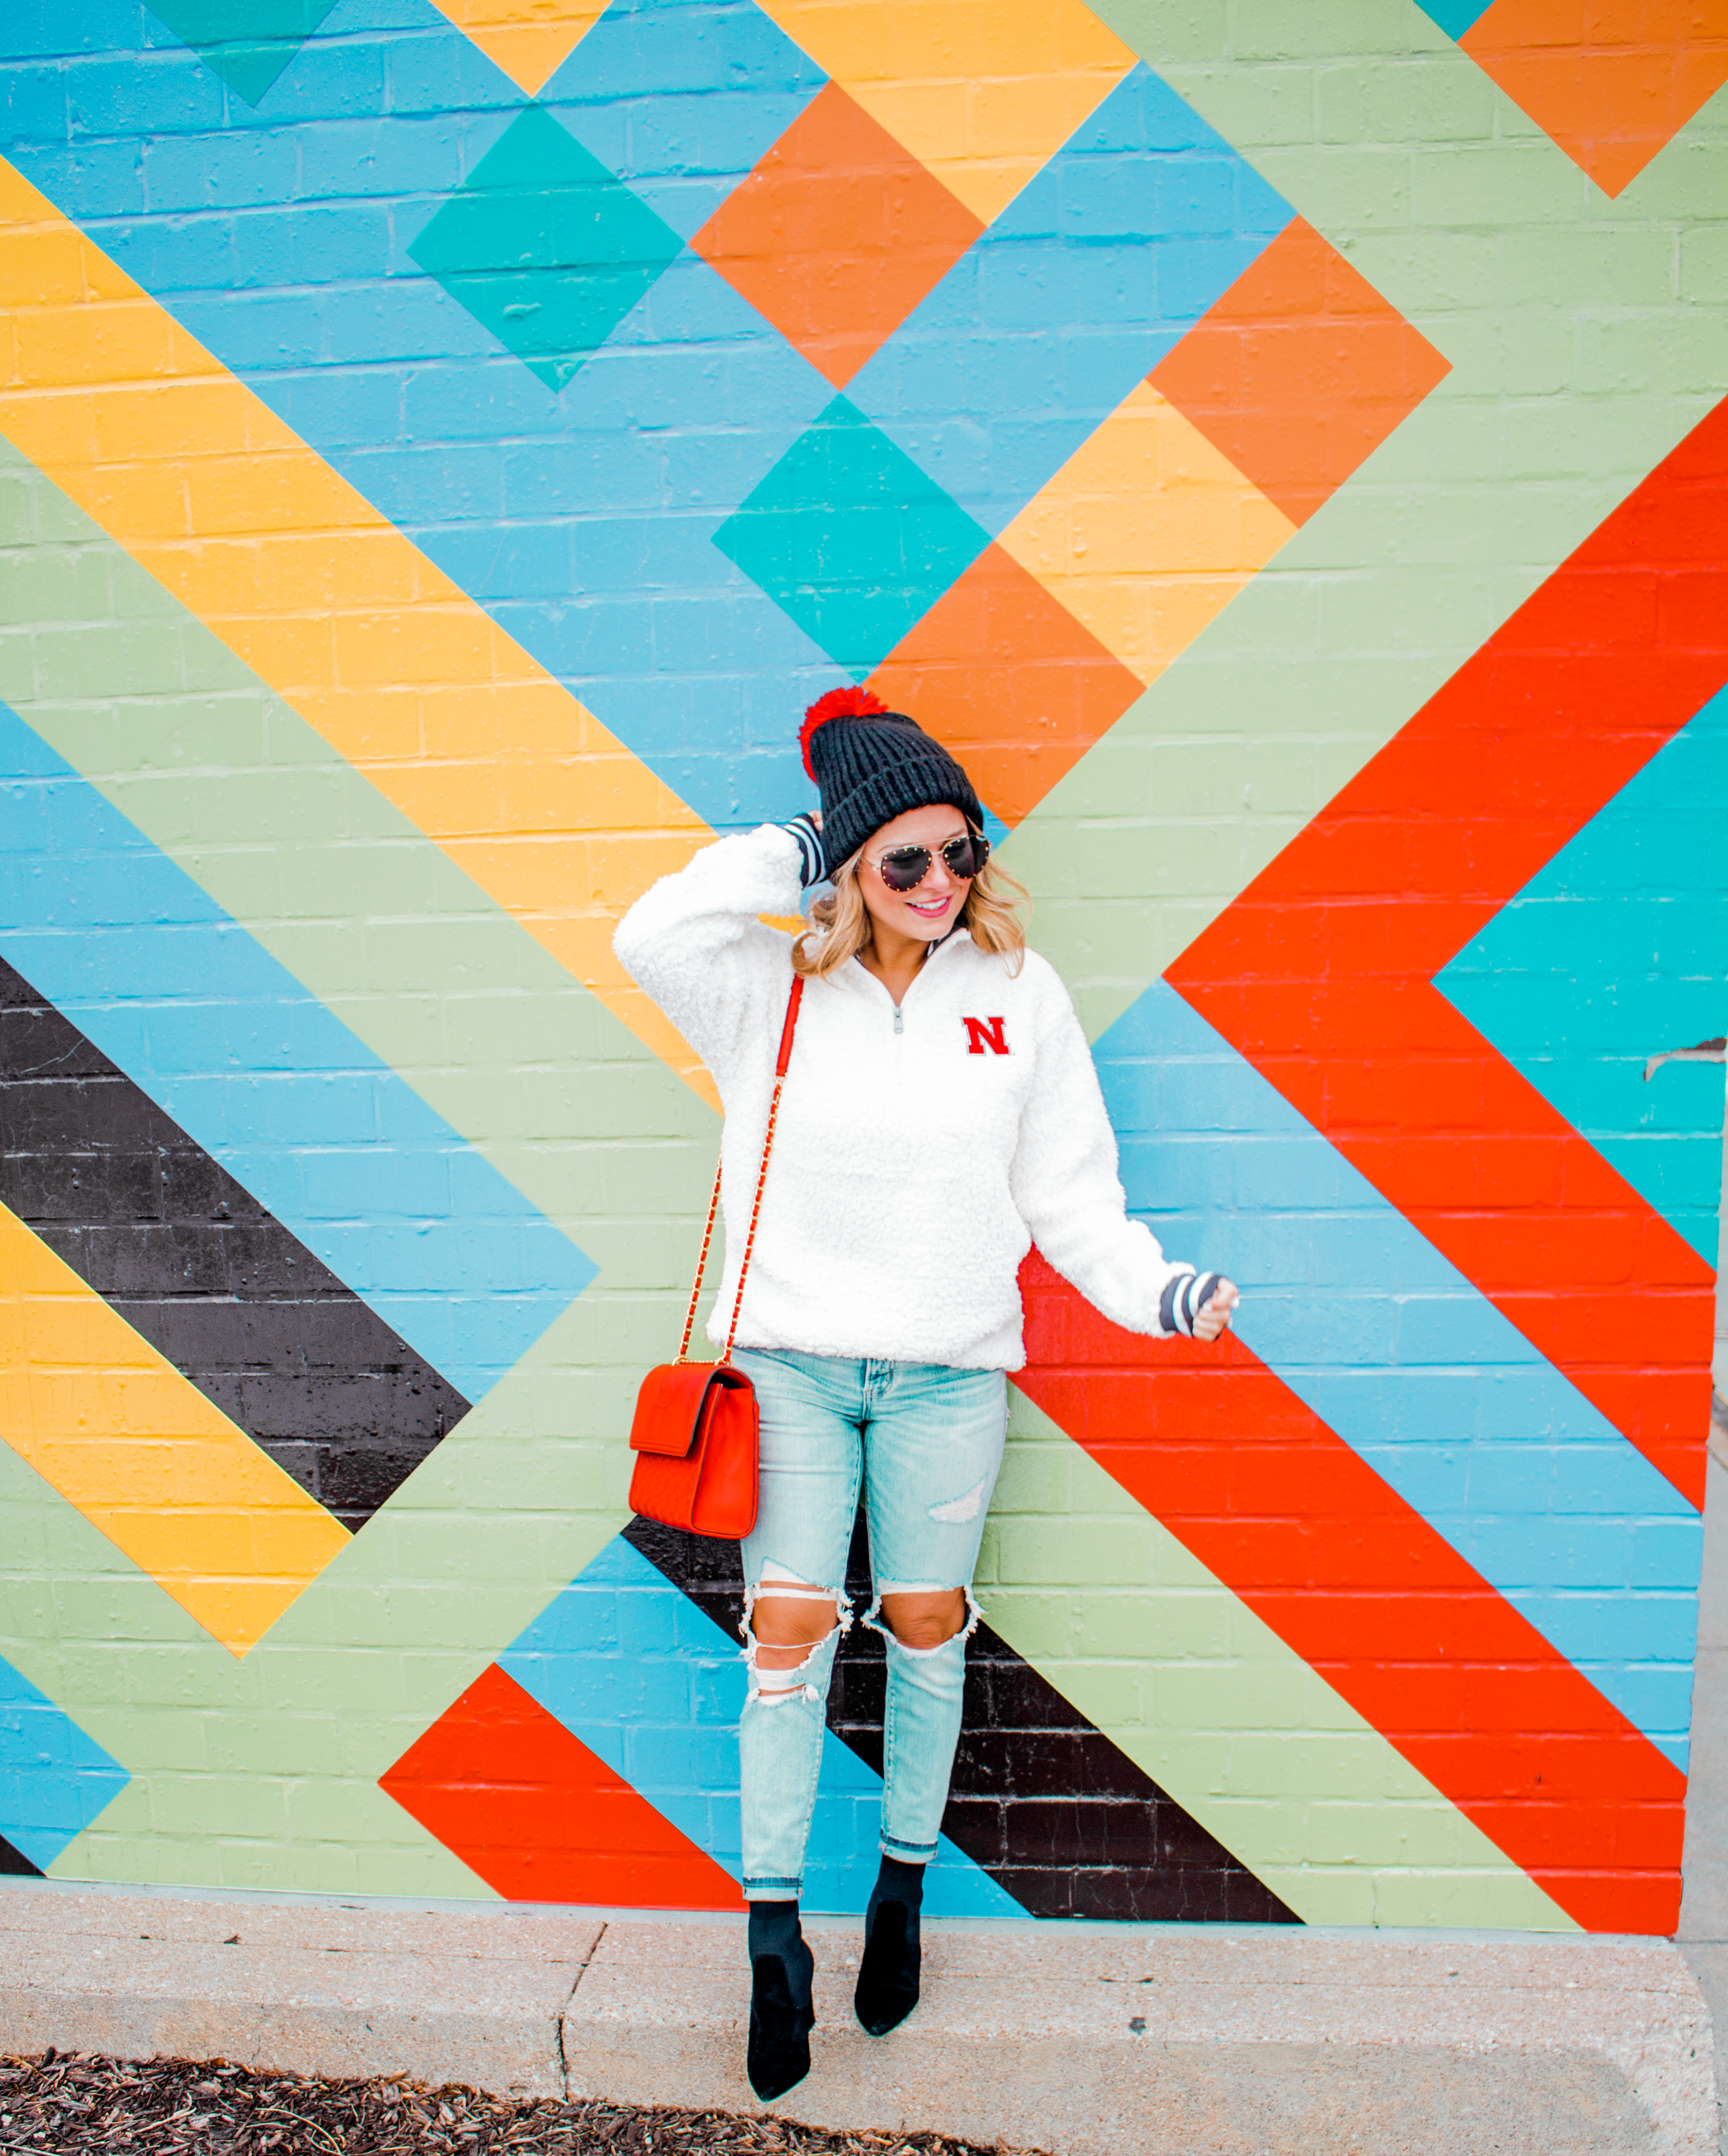 Nebraska - Women's Fashion - Sherpa - Husker - Pullover - Husker Gear - Omaha Blogger - Sabby Style - Casual Outfit - 15